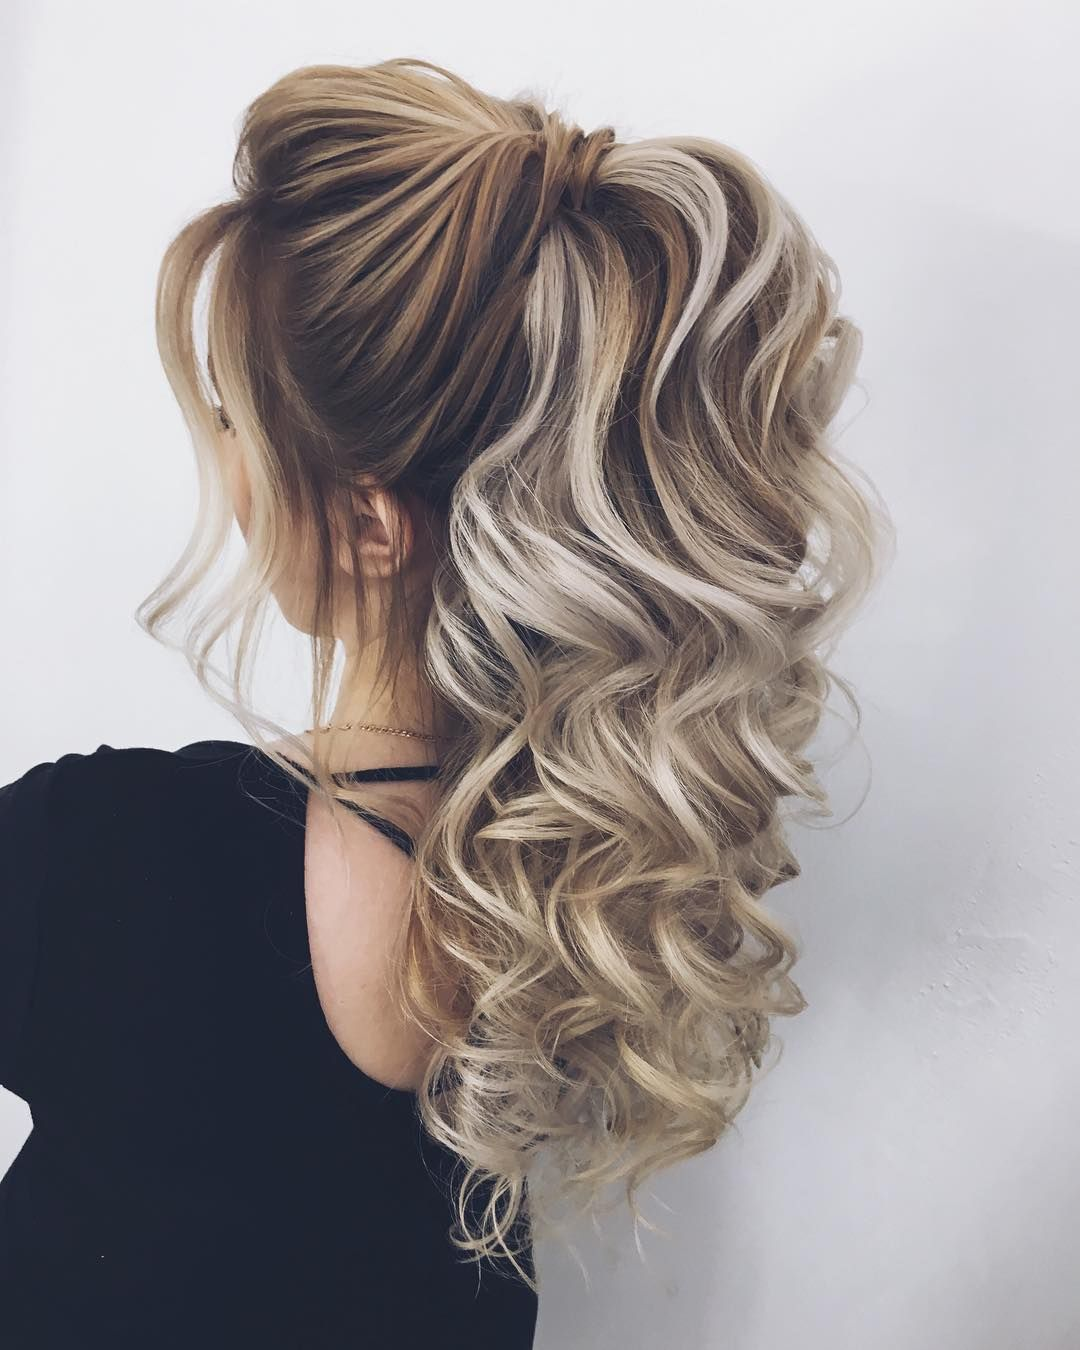 55 amazing updo hairstyle with the wow factor | prom hair